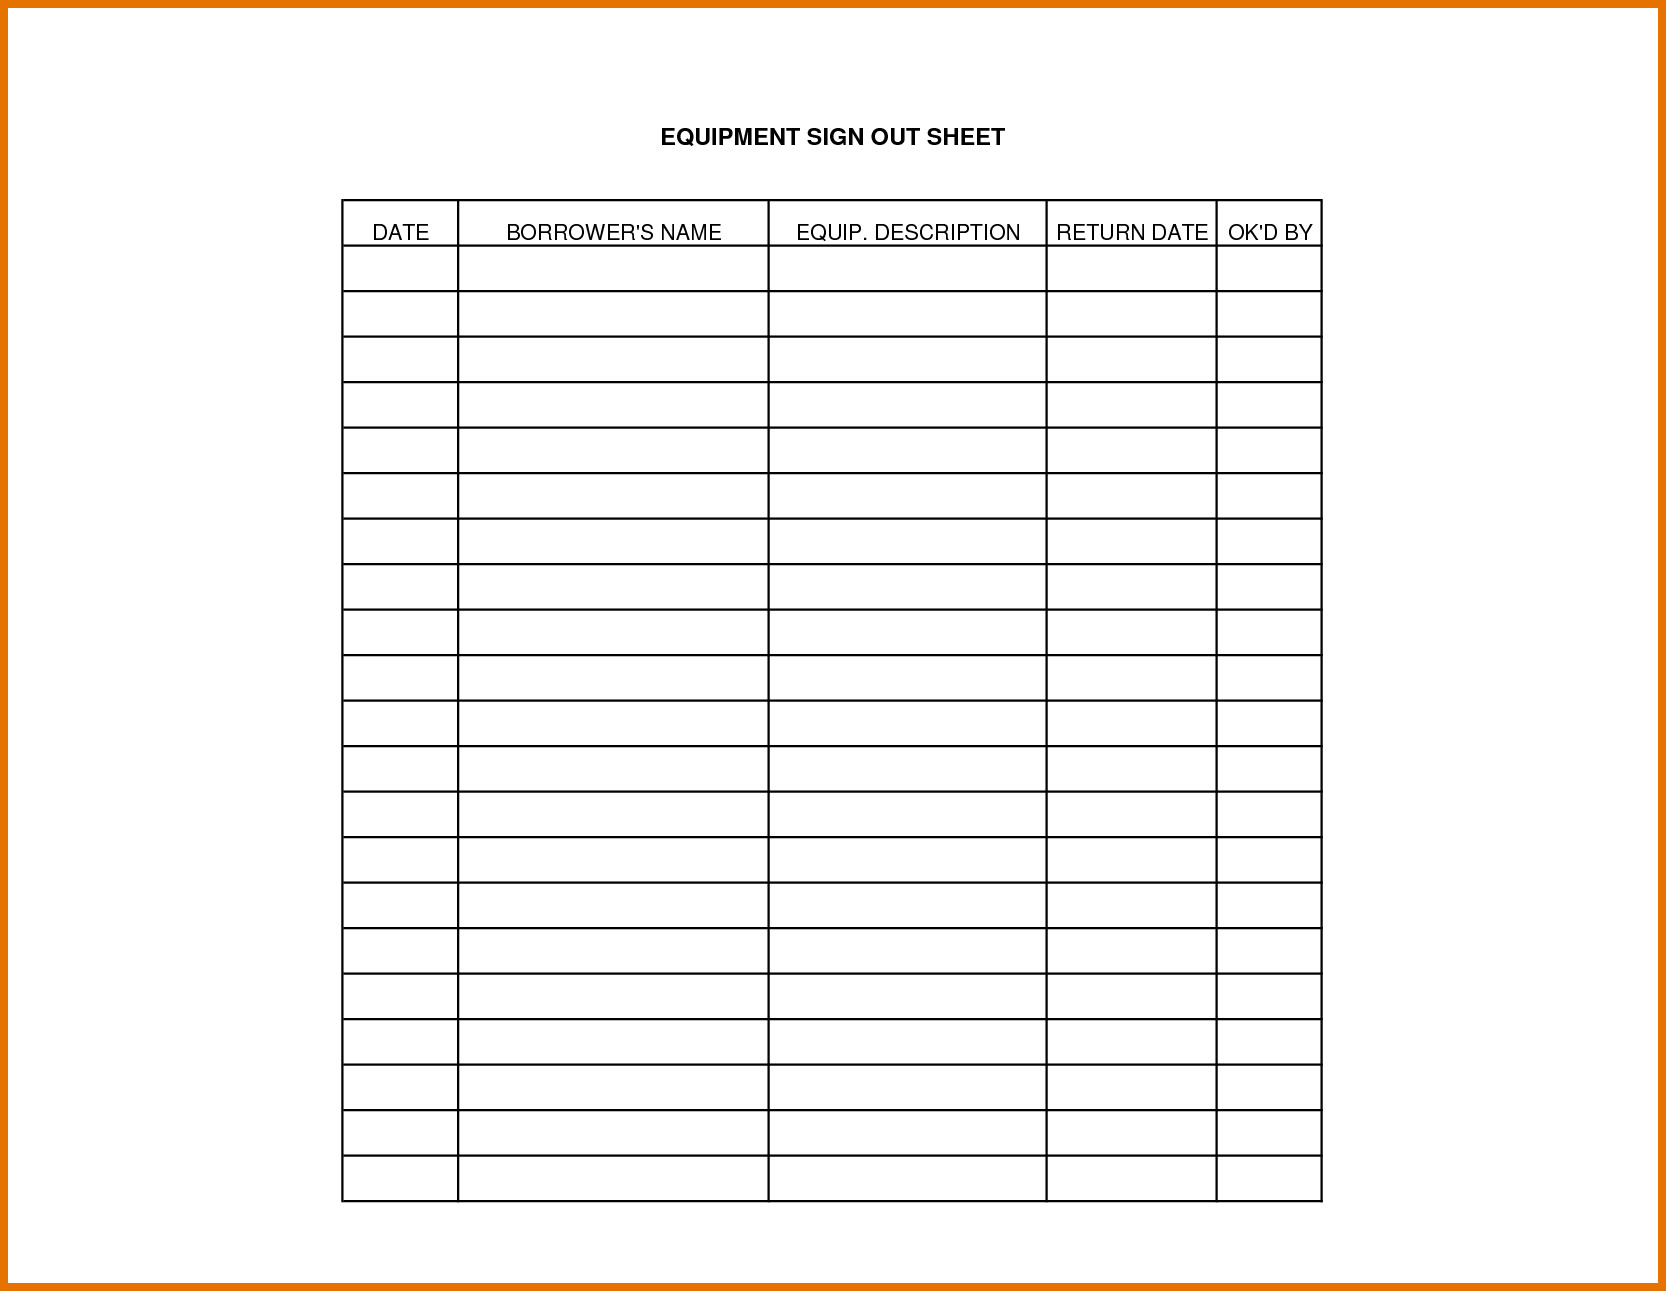 Equipment Sign Out Sheet Equipment Sign Out Sheet Template Projects to Try